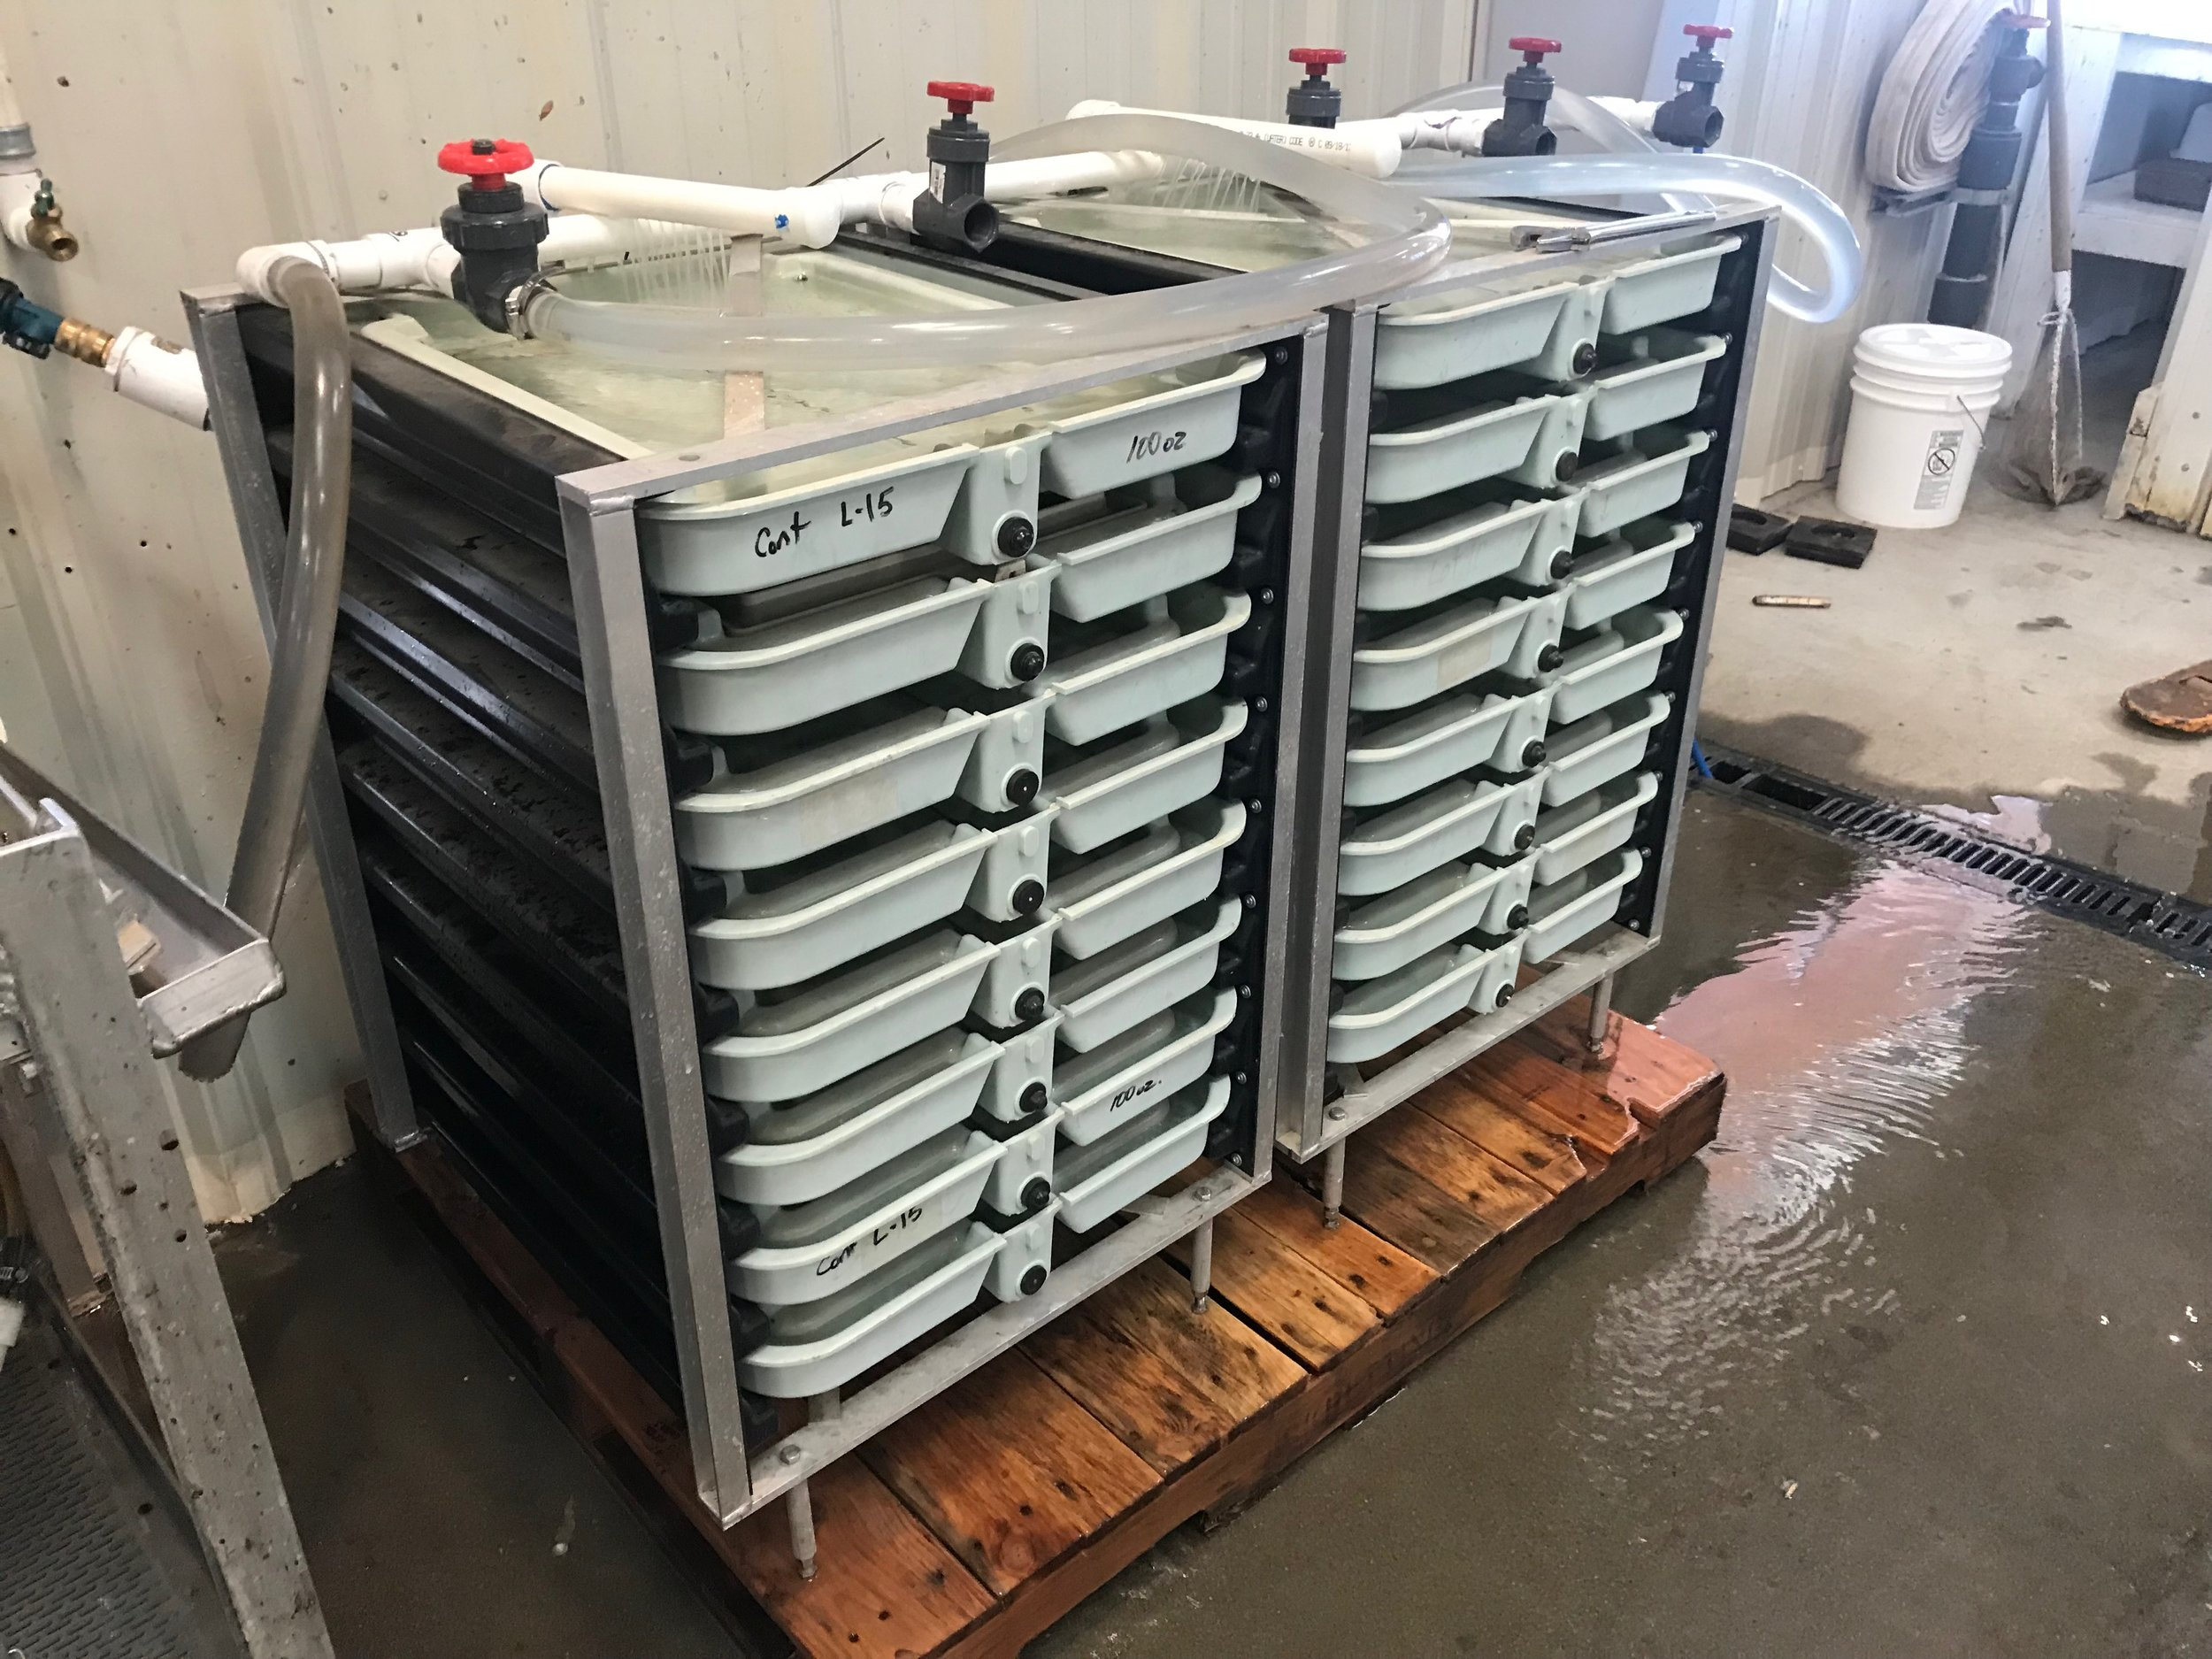 Upright incubators - Embryos develop in these stacks until after hatching